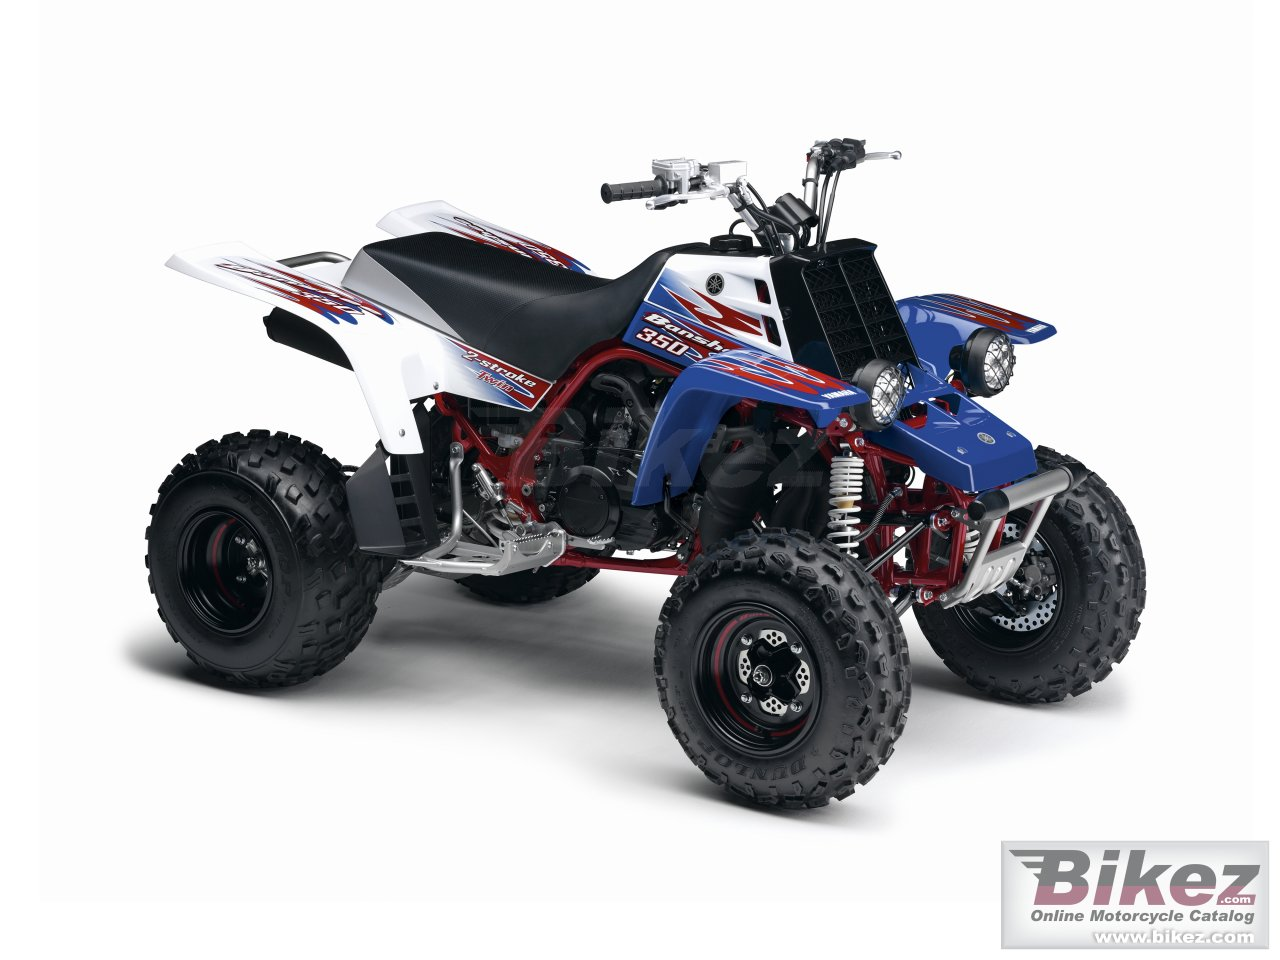 Big Yamaha yfz350 banshee picture and wallpaper from Bikez.com